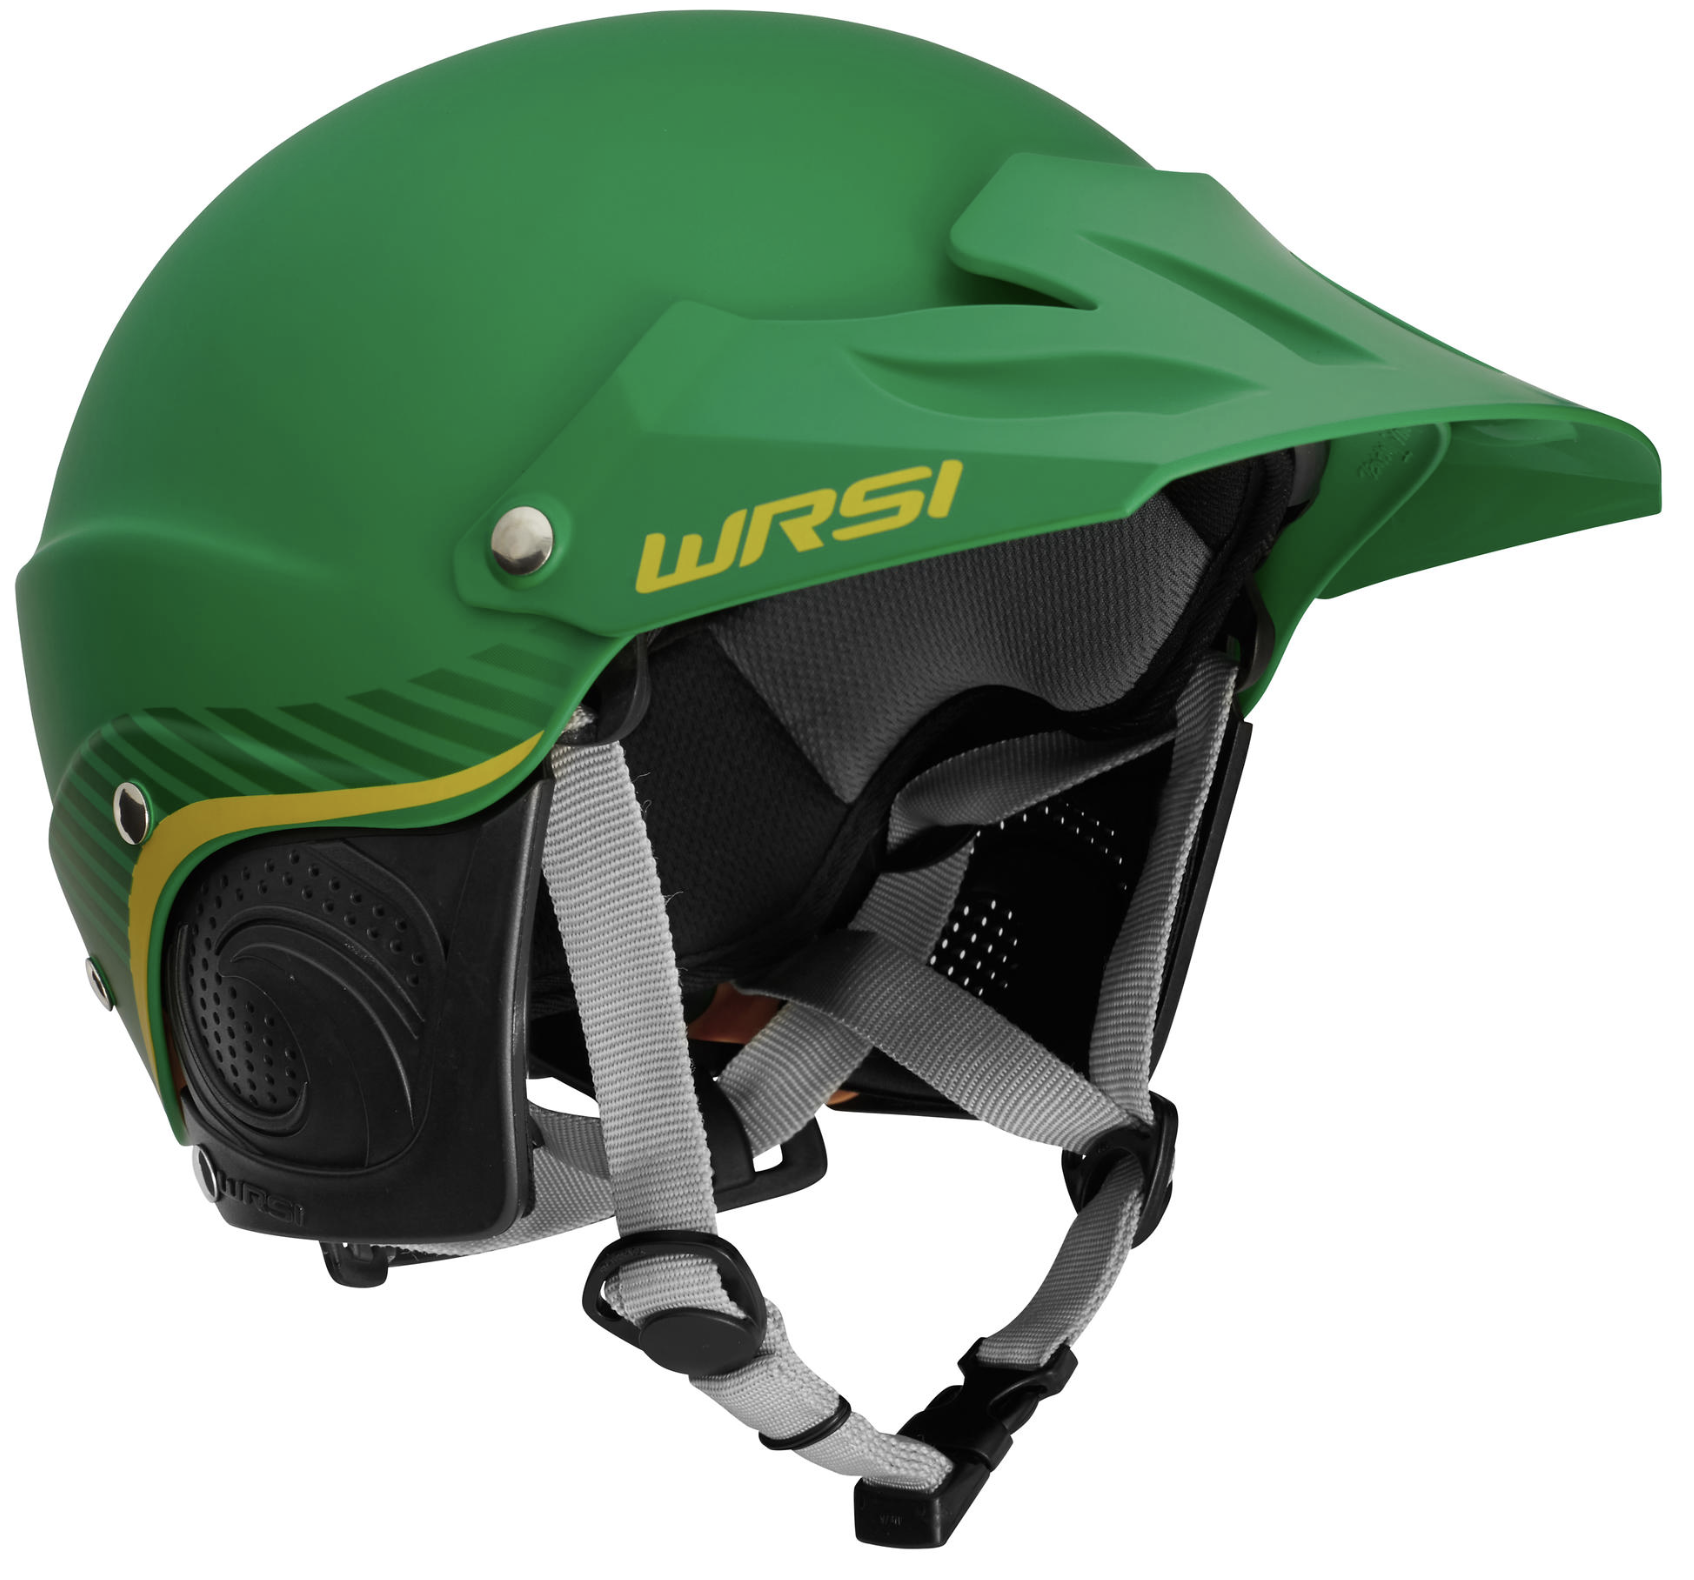 Helmets: WRSI Current Pro Helmet by NRS - Image 4784